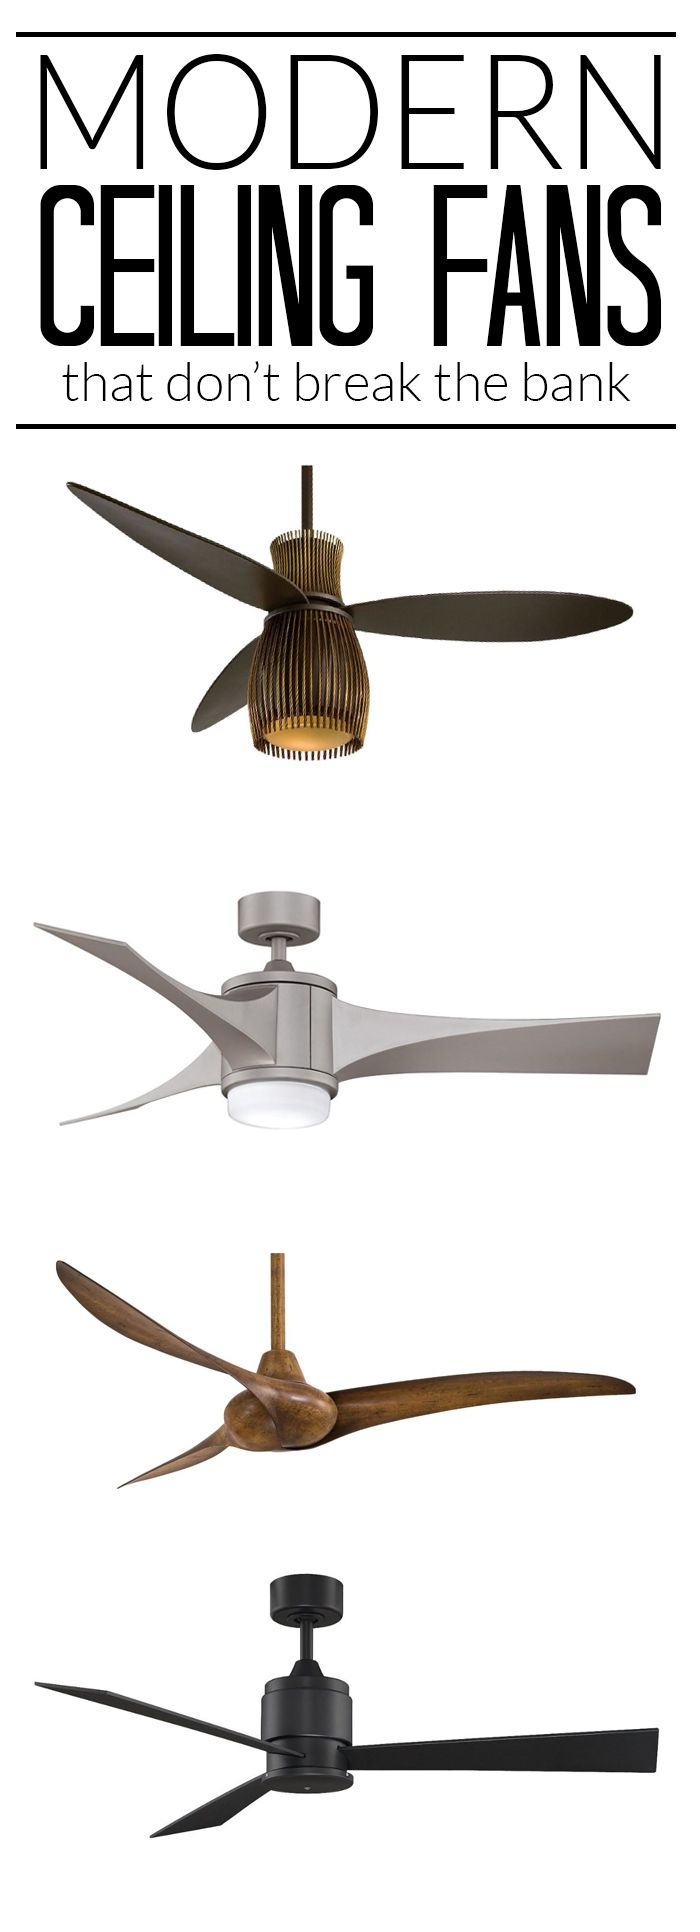 Modern ceiling fans stylish fans do exist modern ceiling modern love these modern ceiling fans they could work in so many spaces from glam to industrial to eclectic and even modern farmhouse mozeypictures Image collections